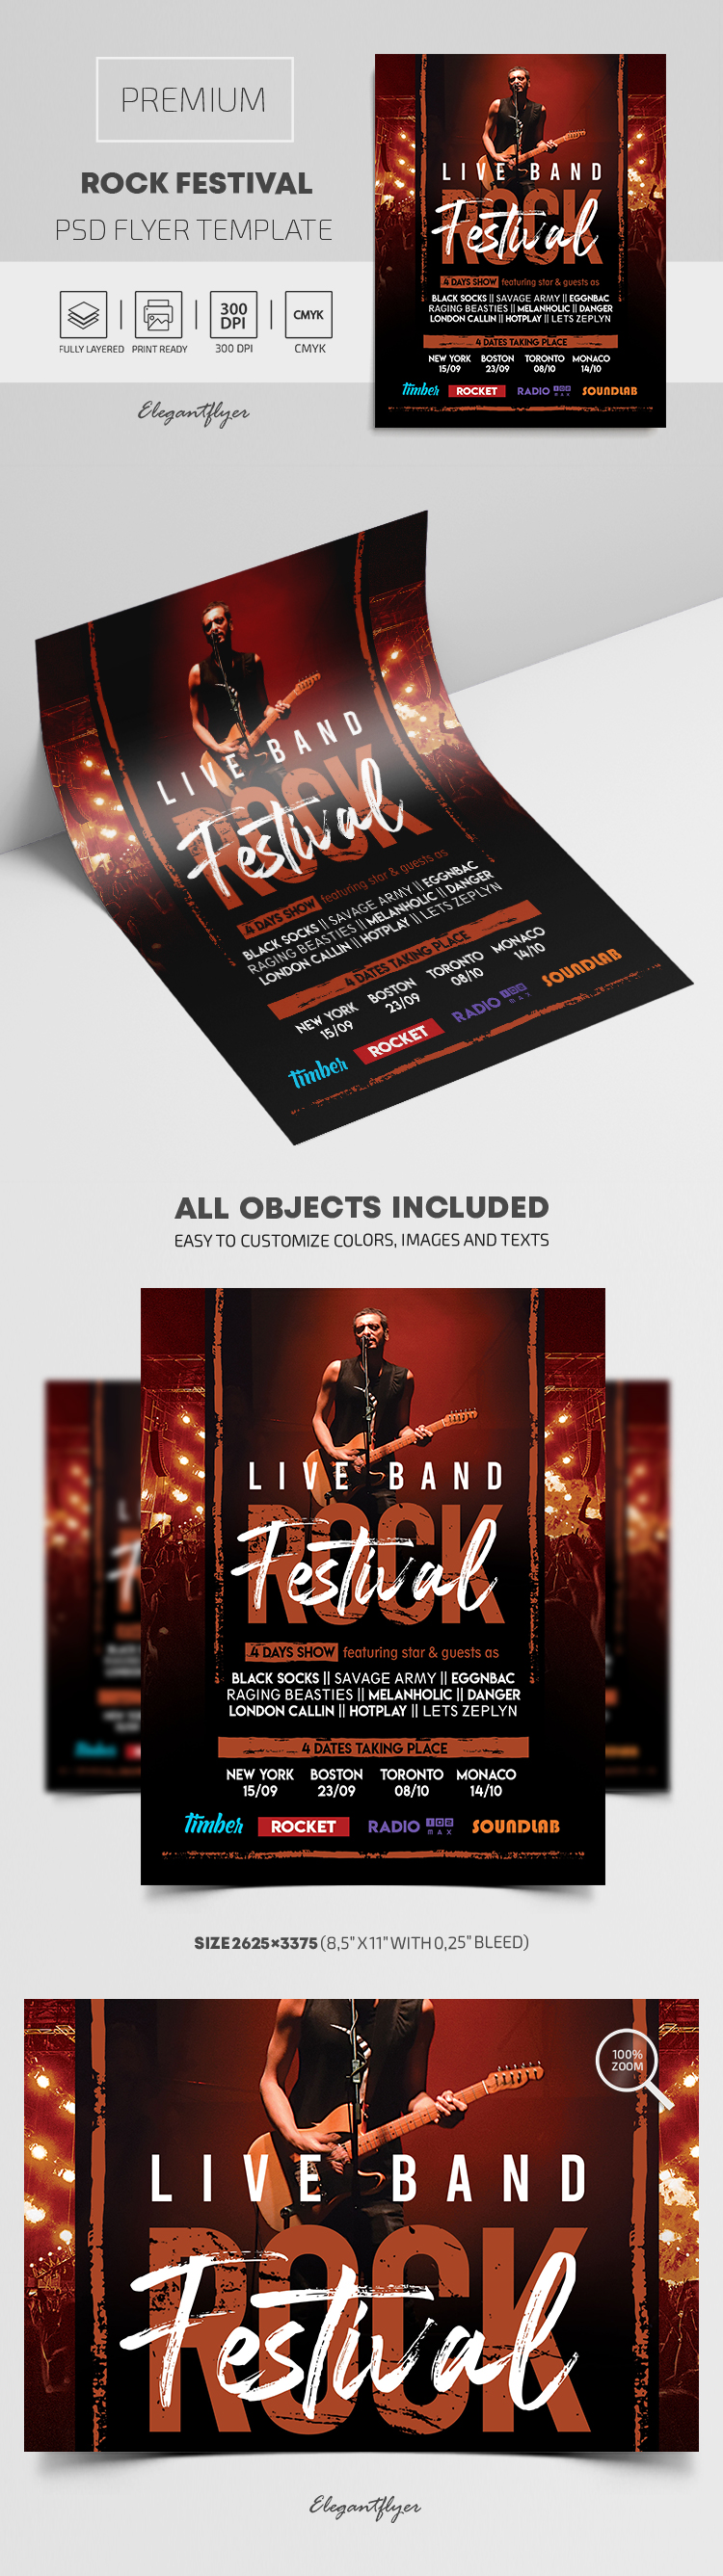 Rock Festival – Premium PSD Flyer Template